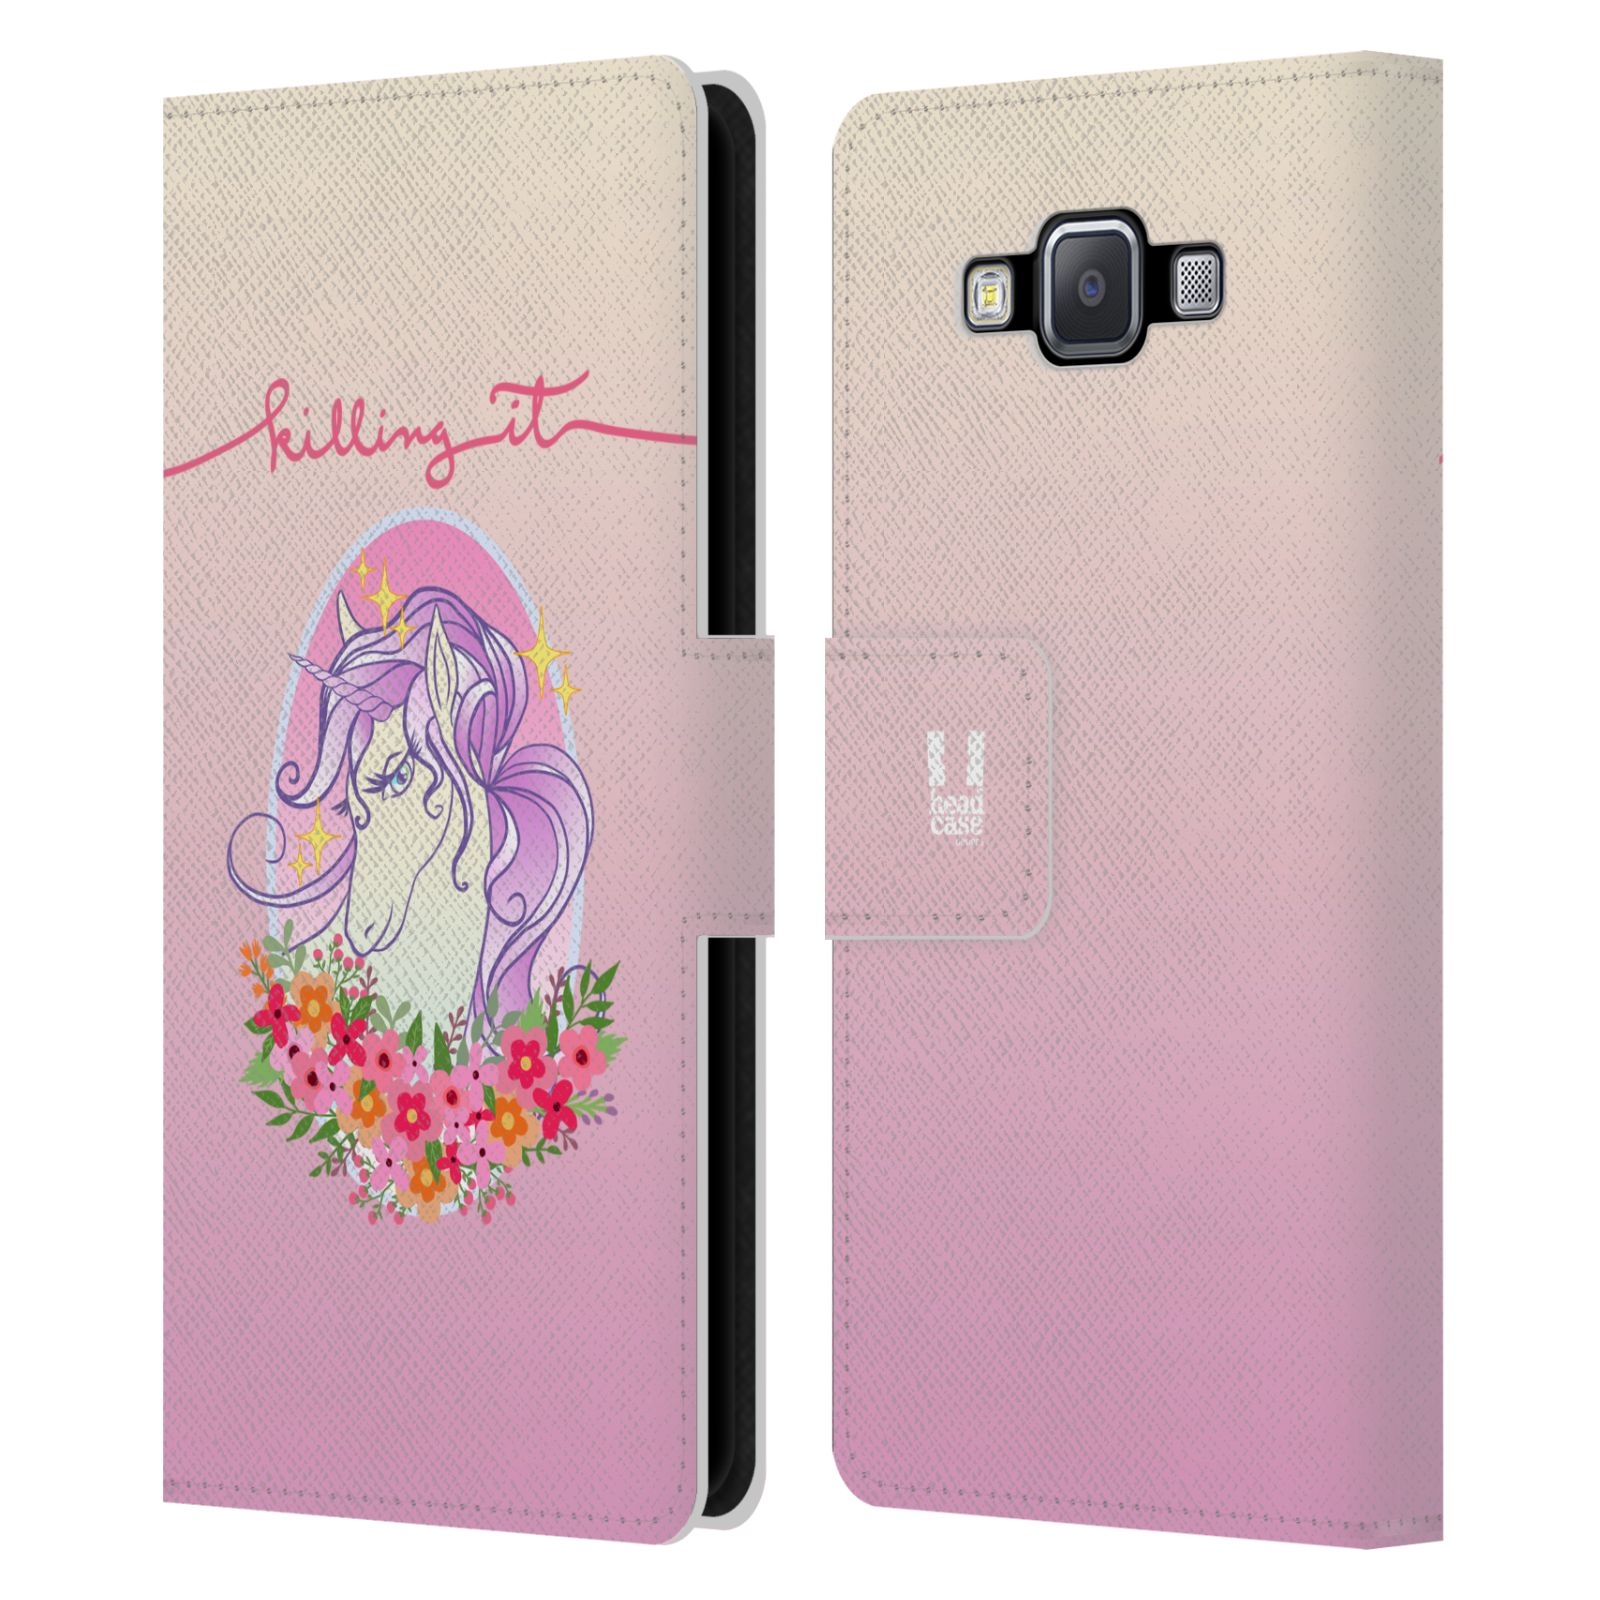 HEAD-CASE-DESIGNS-SASSY-UNICORNS-LEATHER-BOOK-WALLET-CASE-FOR-SAMSUNG-PHONES-2